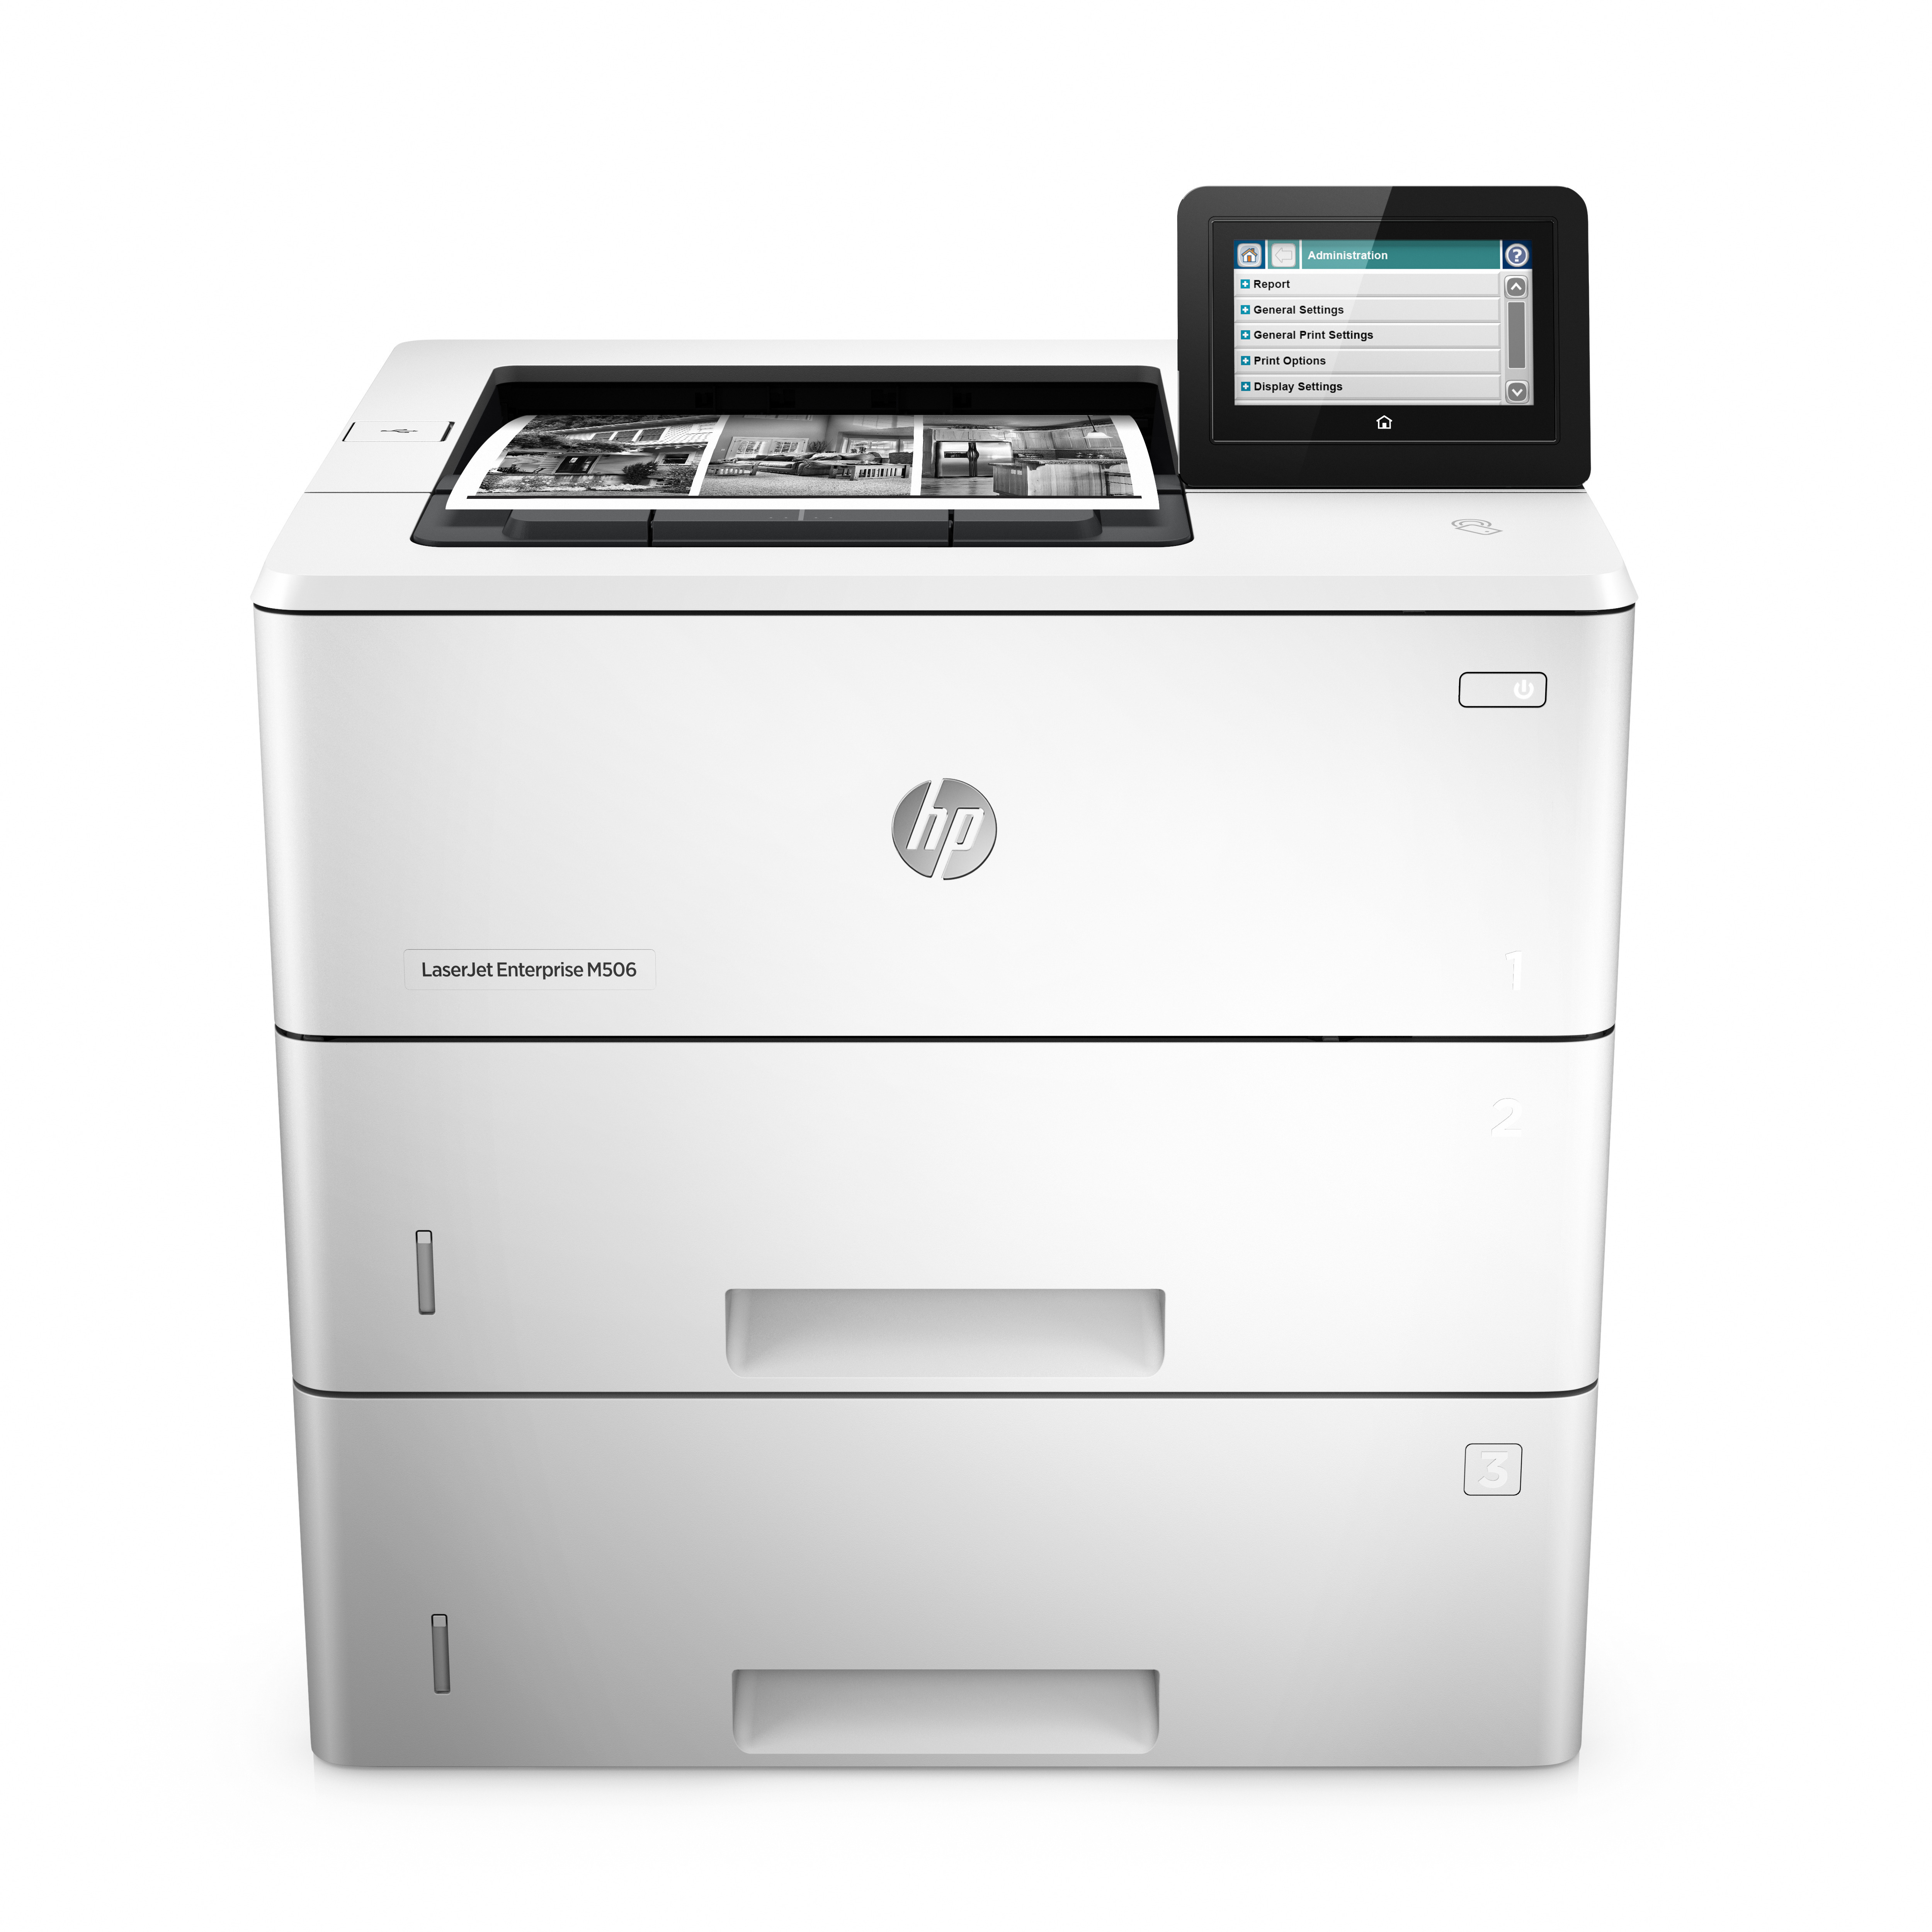 HP LaserJet Enterprise M506x